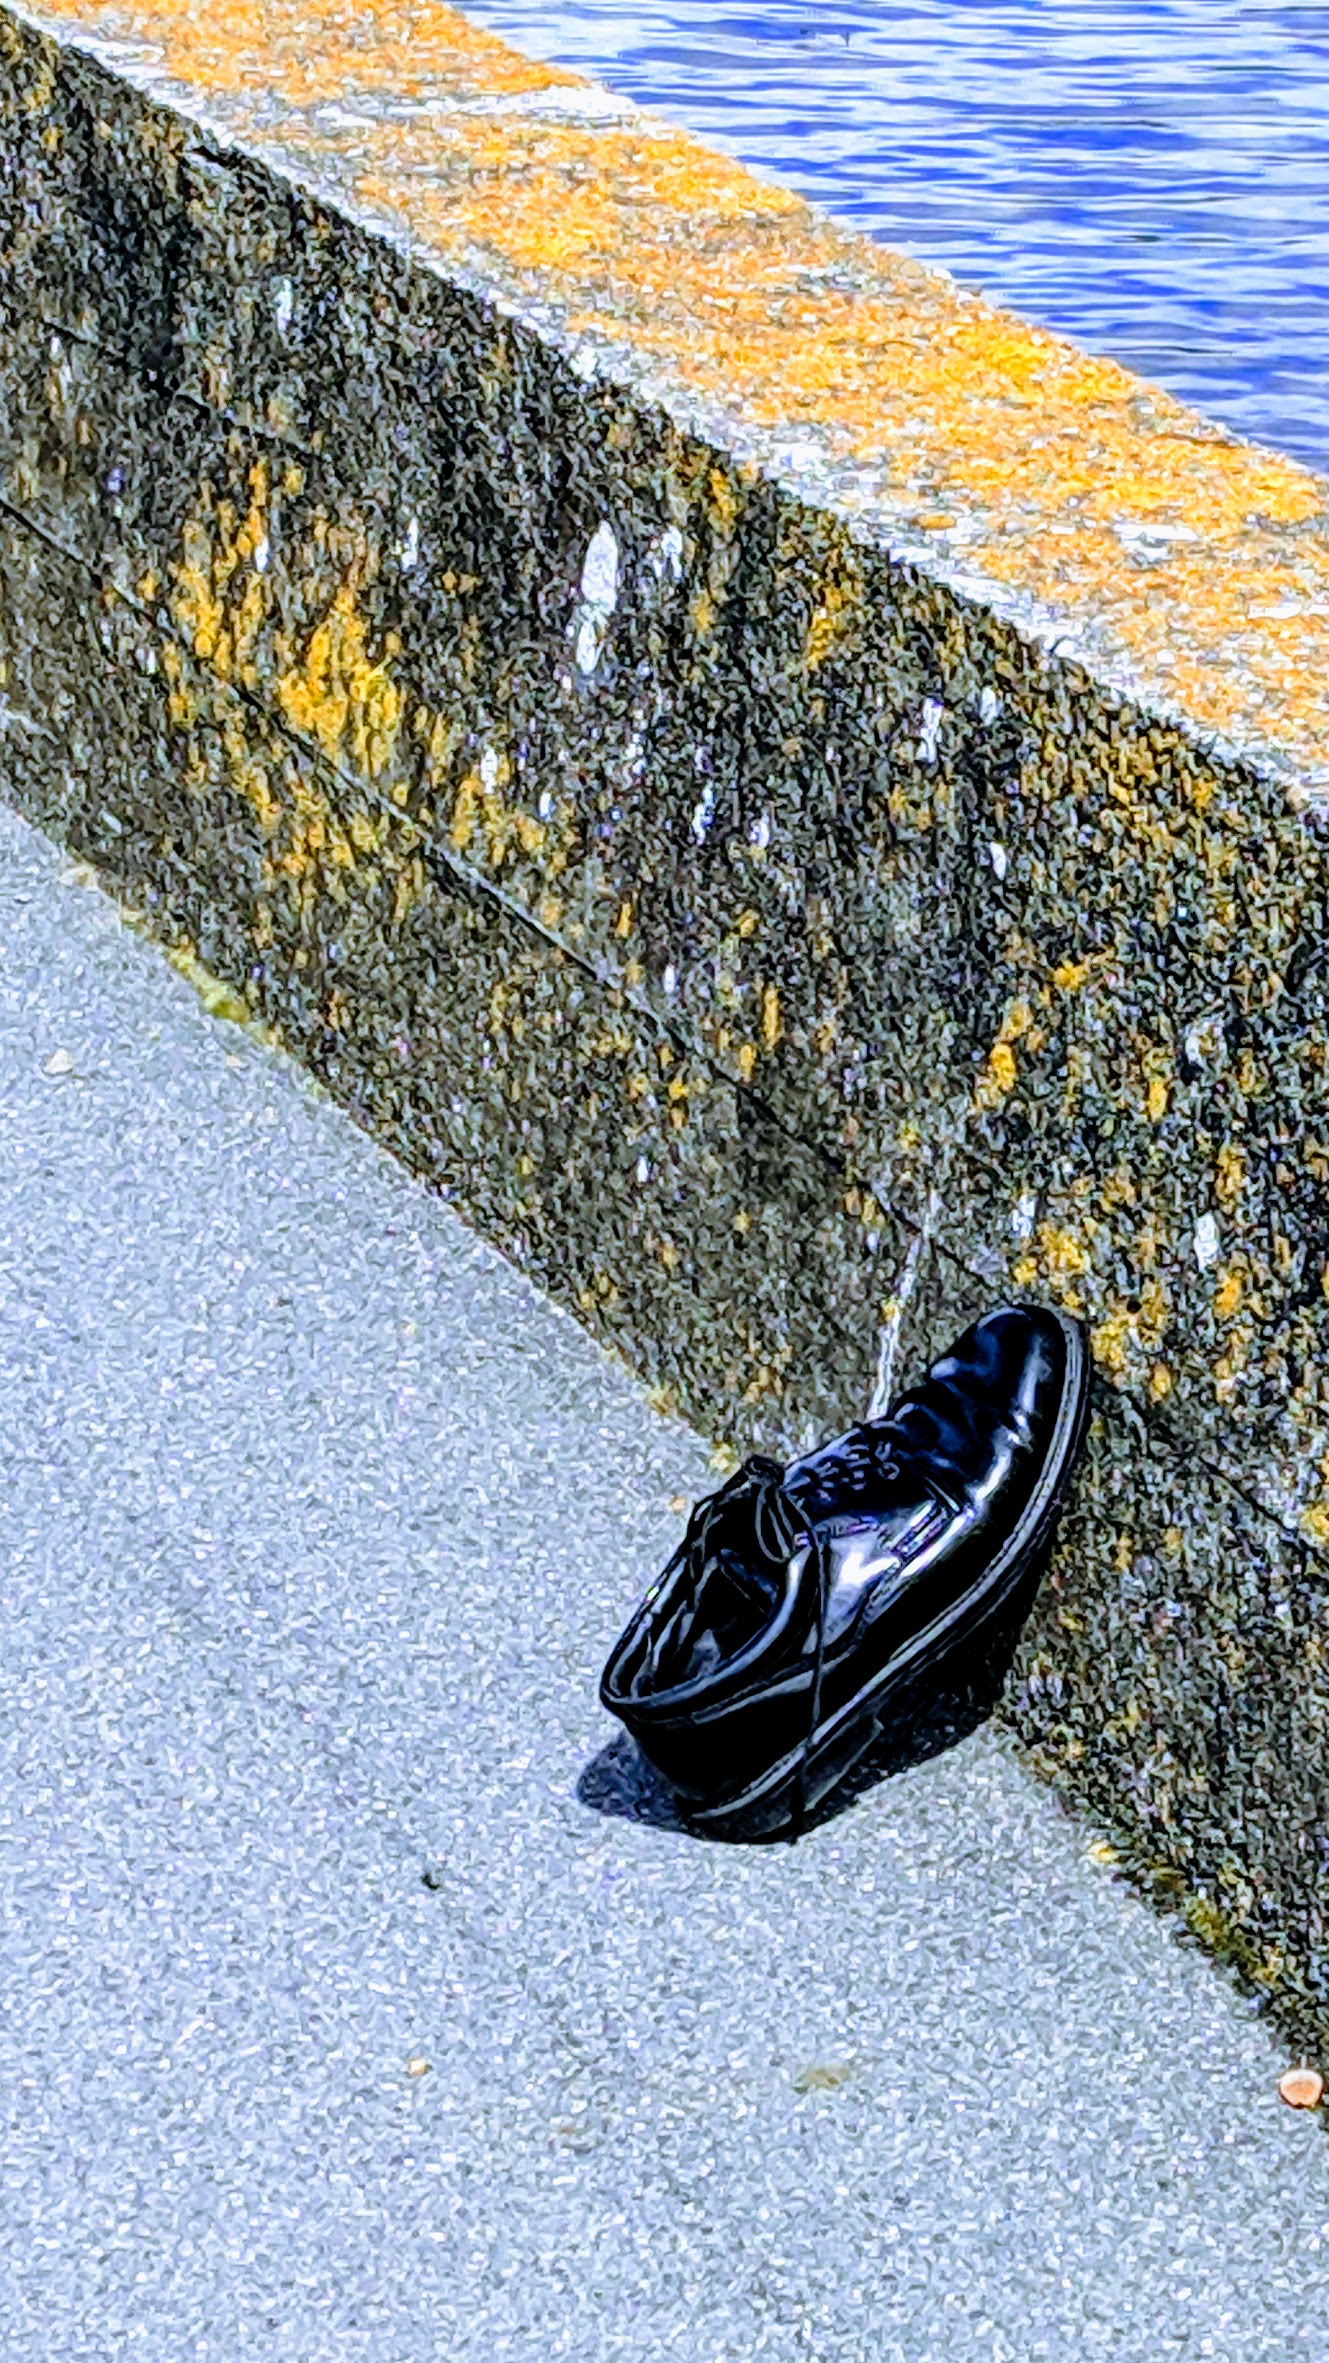 One lost shoe